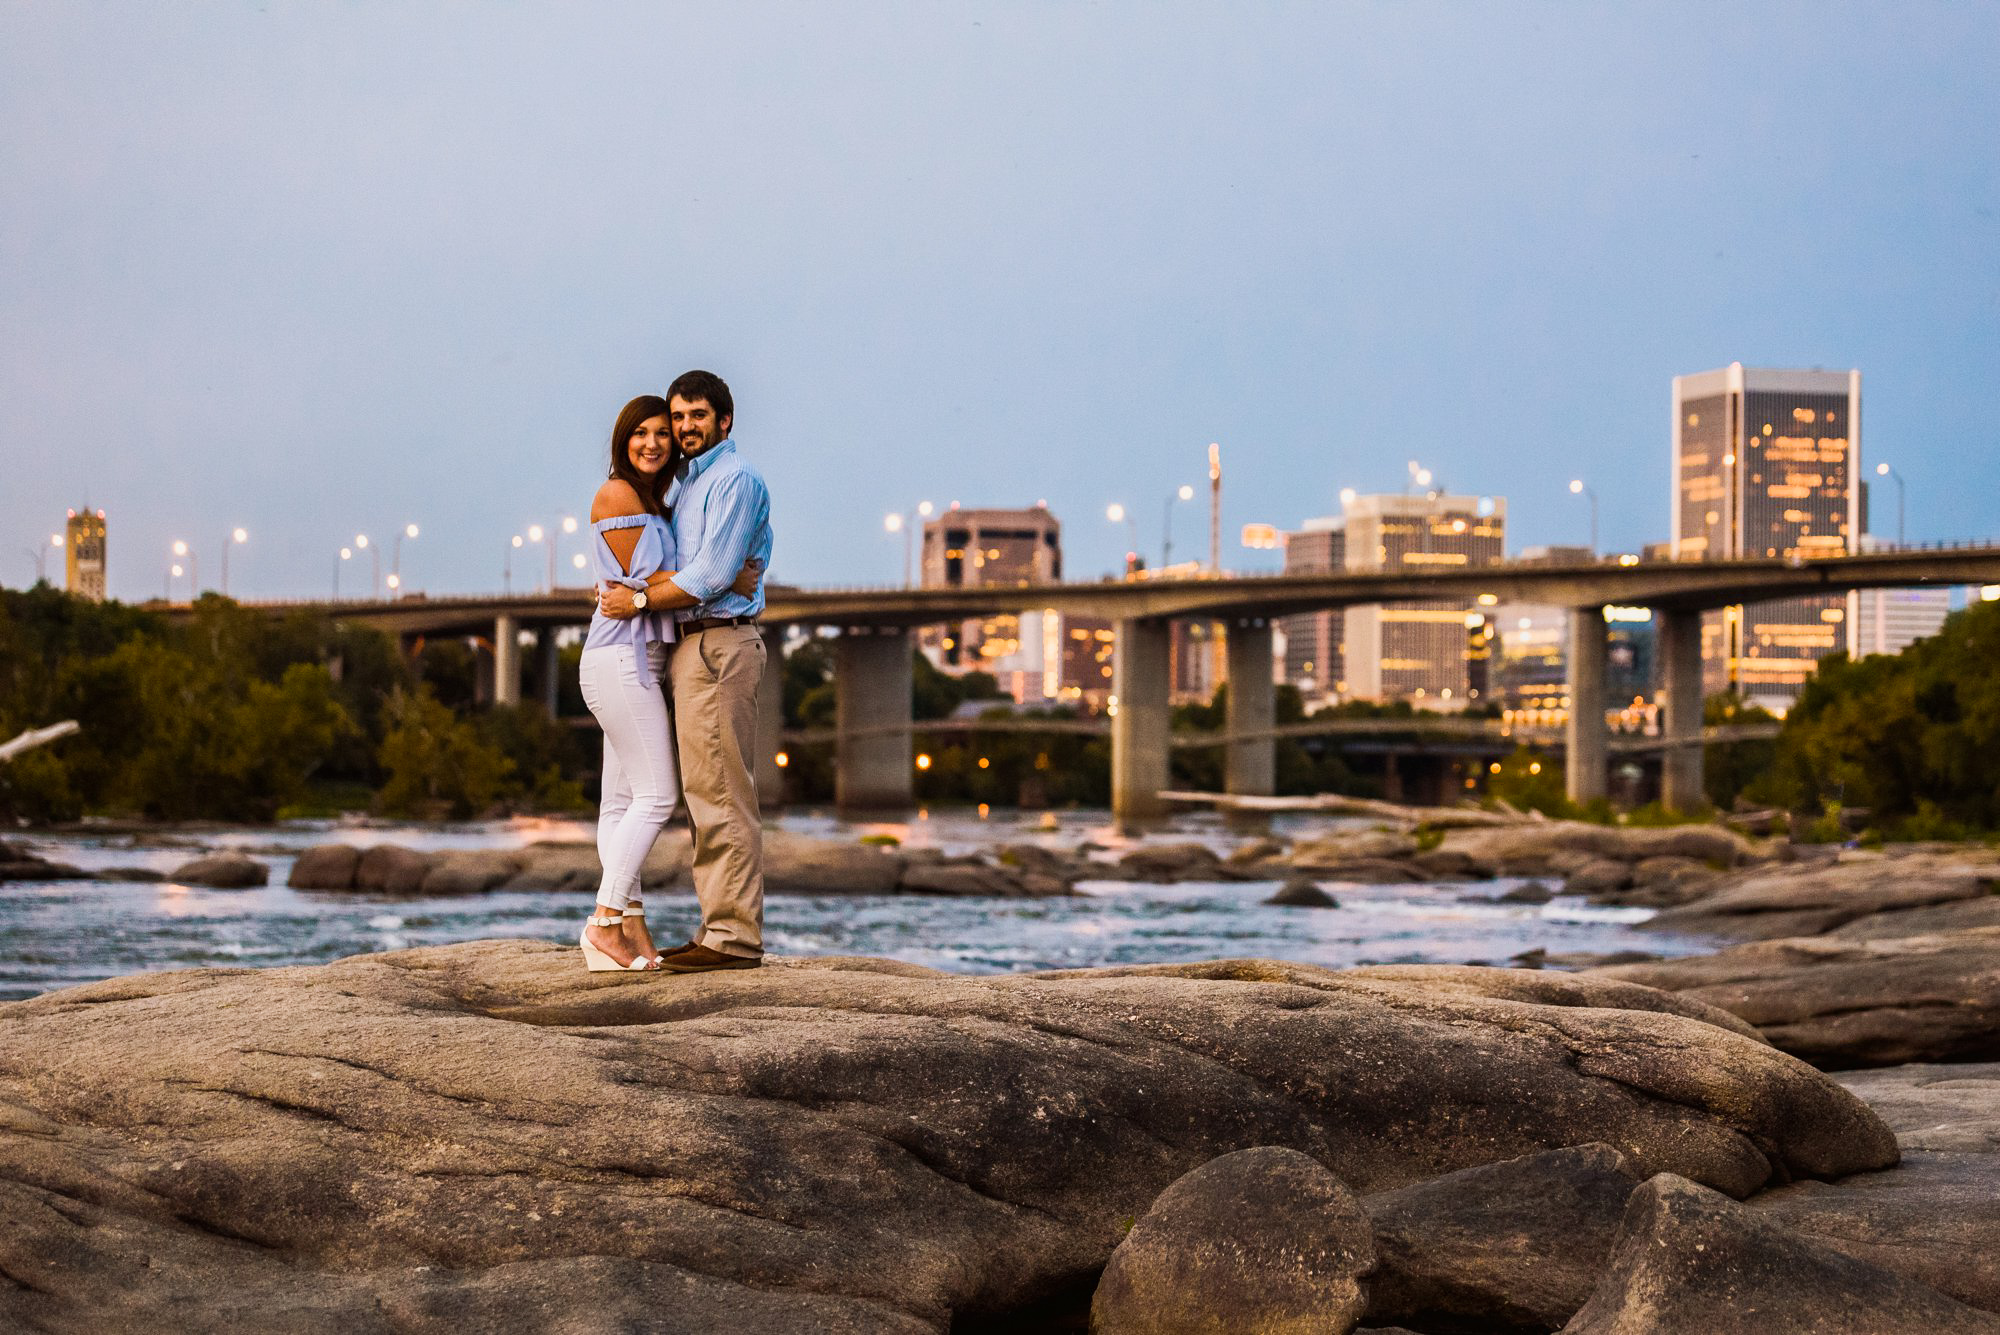 engagement-photography-88-love-stories-13.jpg